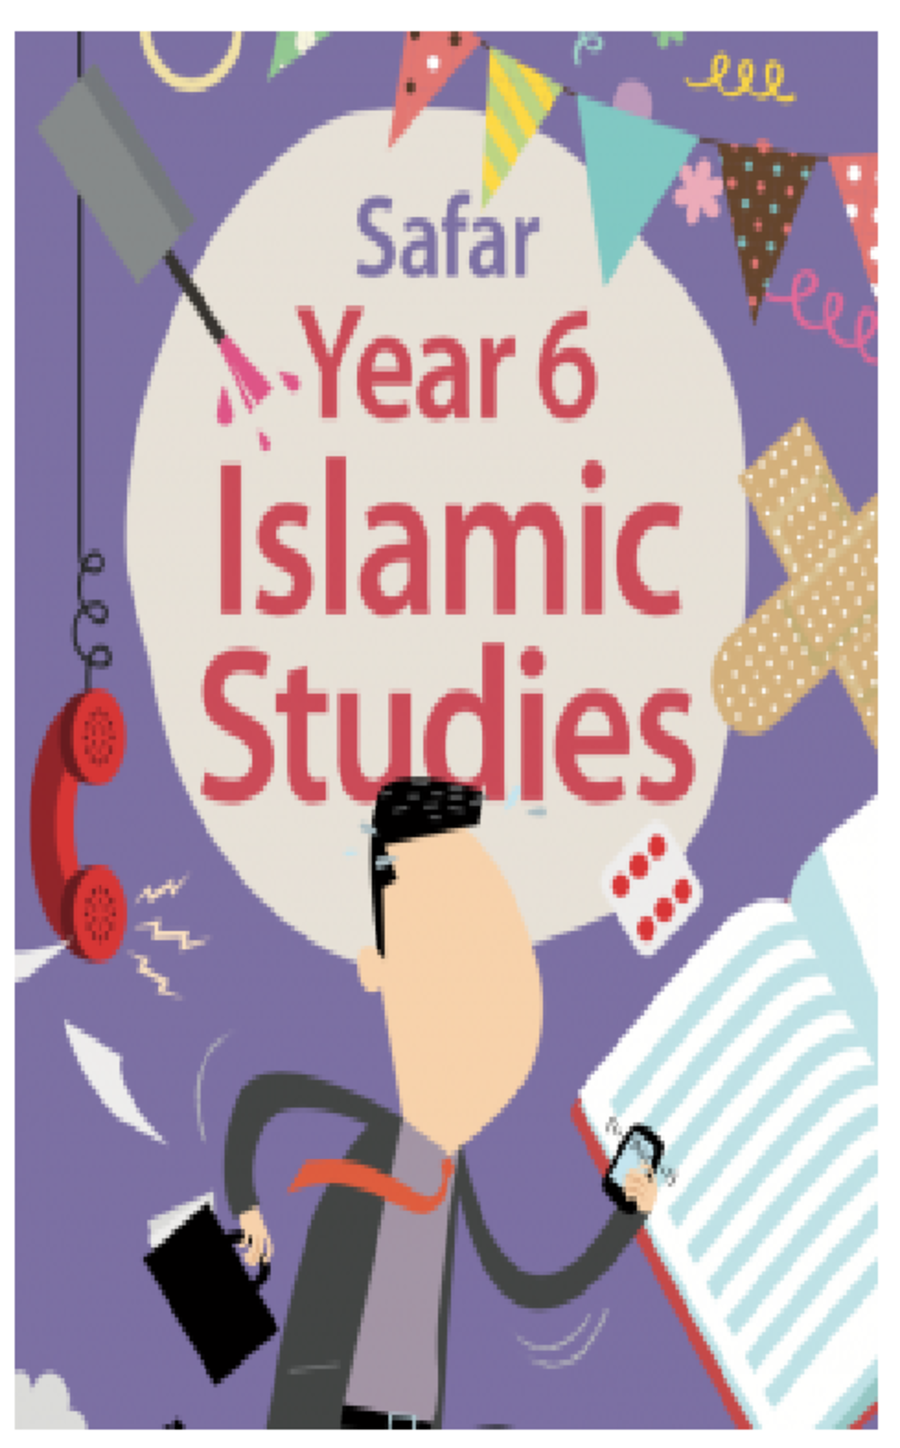 Safar Year 6 Islamic Studies (TextBook)